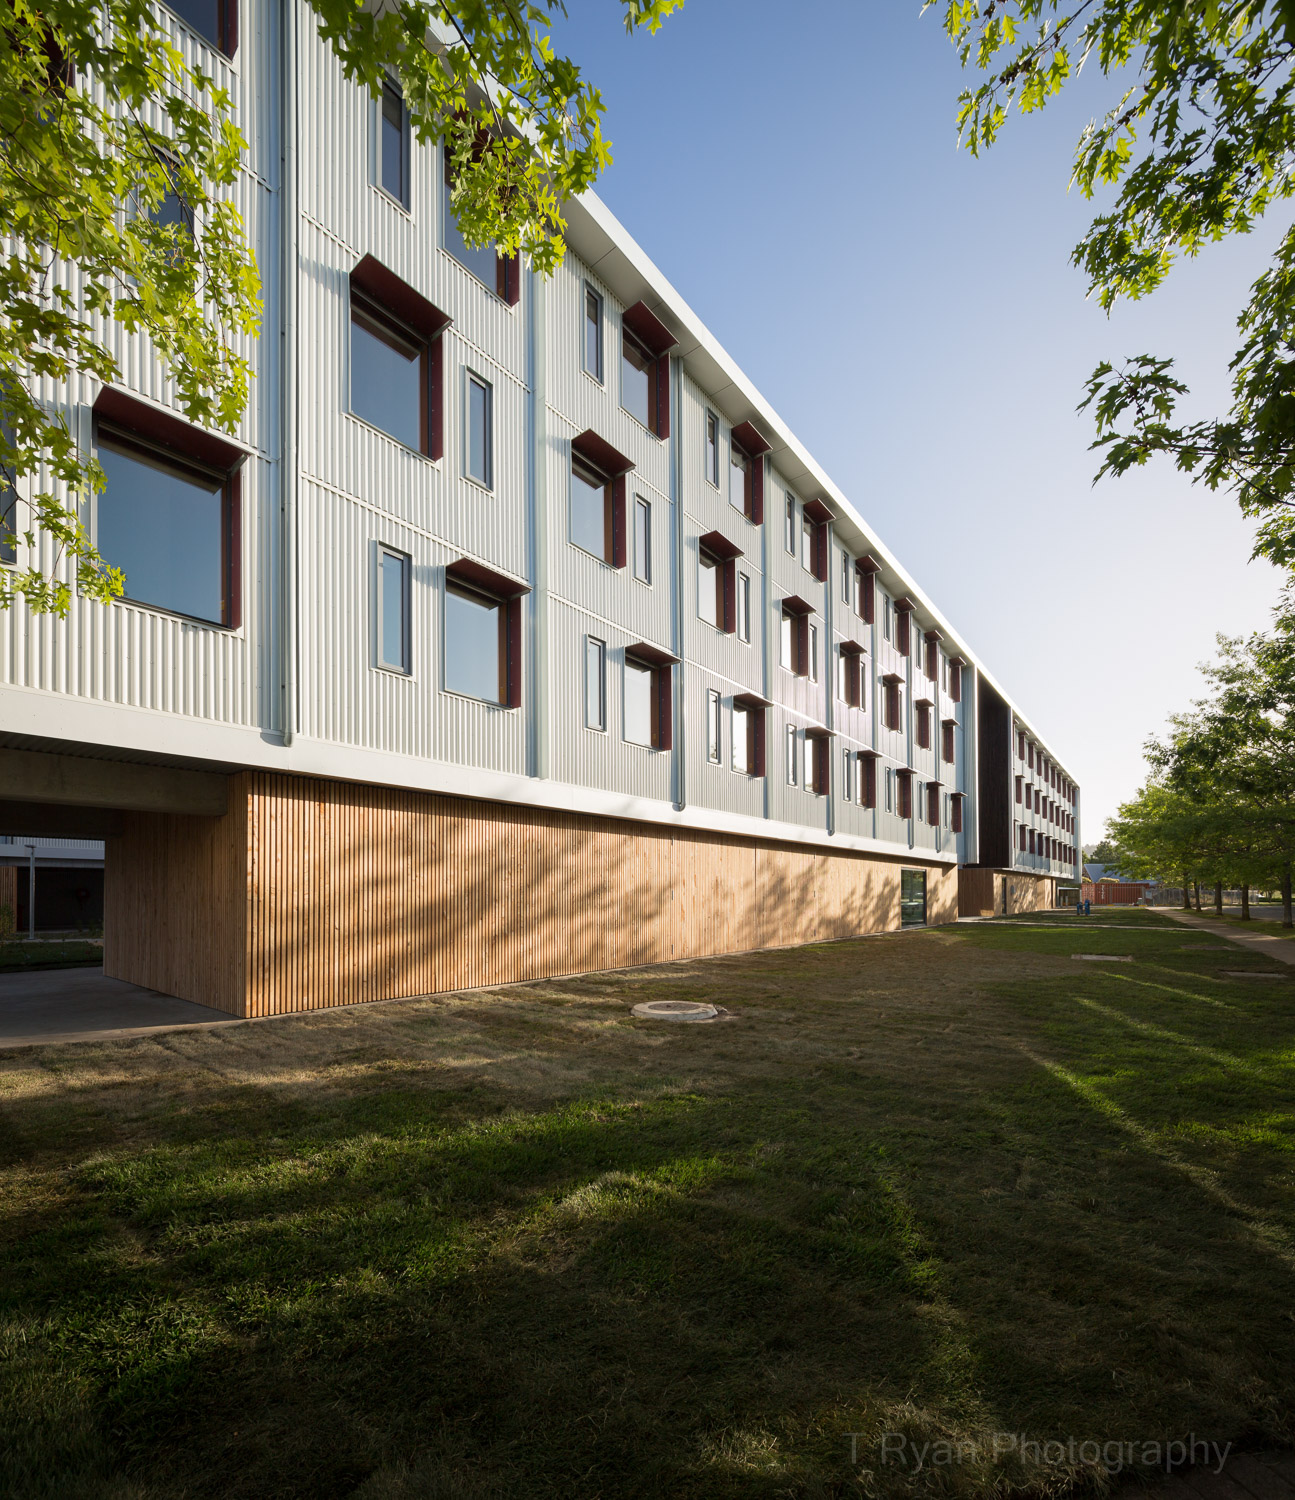 University of Tasmania - Inveresk Residences, Morrison & Breytenbach Architects, Hutchinson Builders  Aldanmark Consulting Engineers